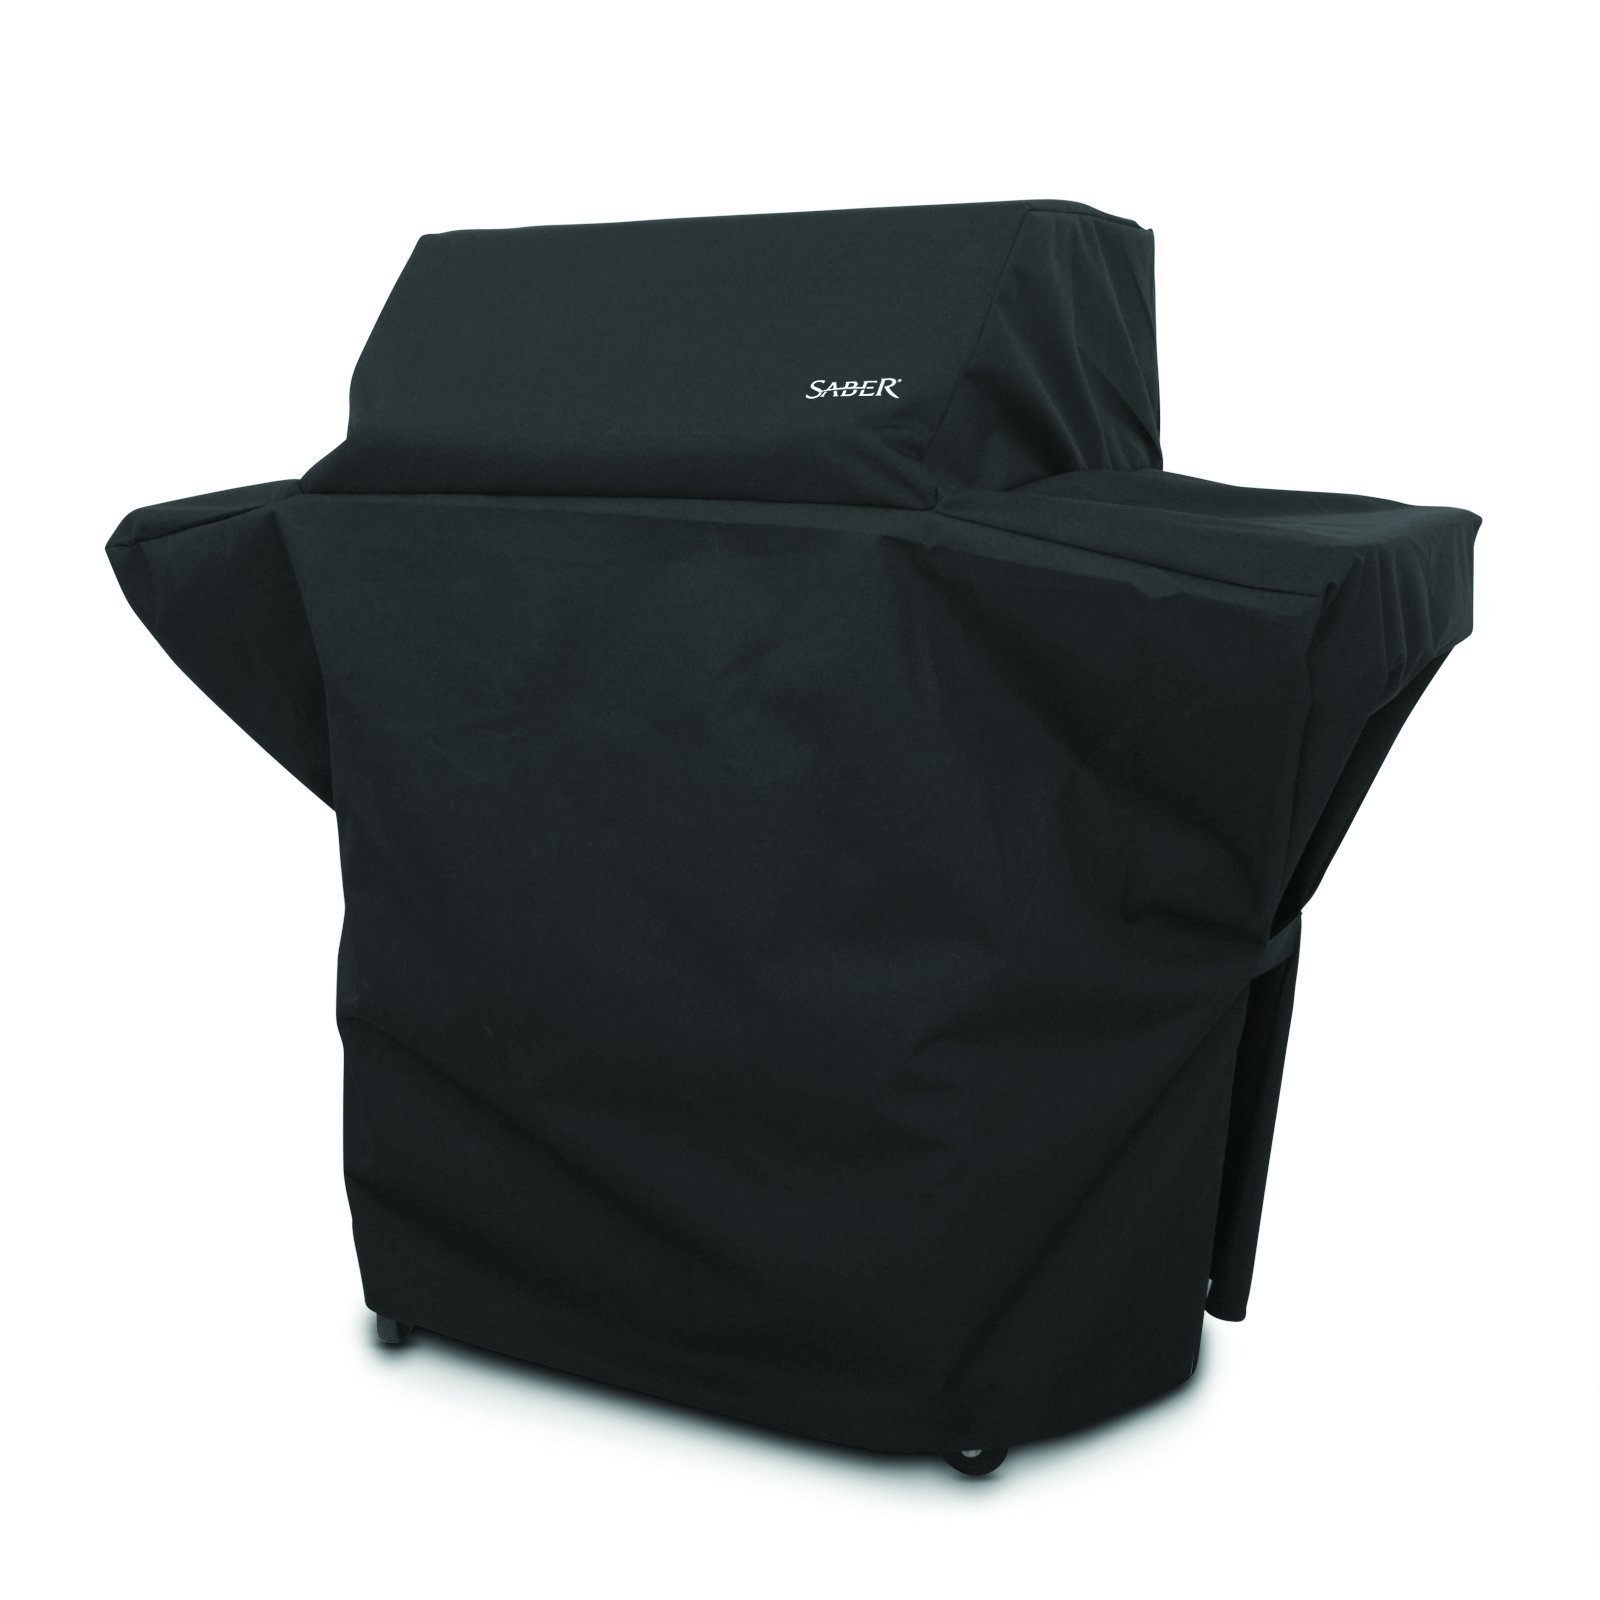 Saber Char-Broil Black Grill Cover 57.5 in. W x 26 in. D x 48 in. H For Fits 500 Size Saber Gril